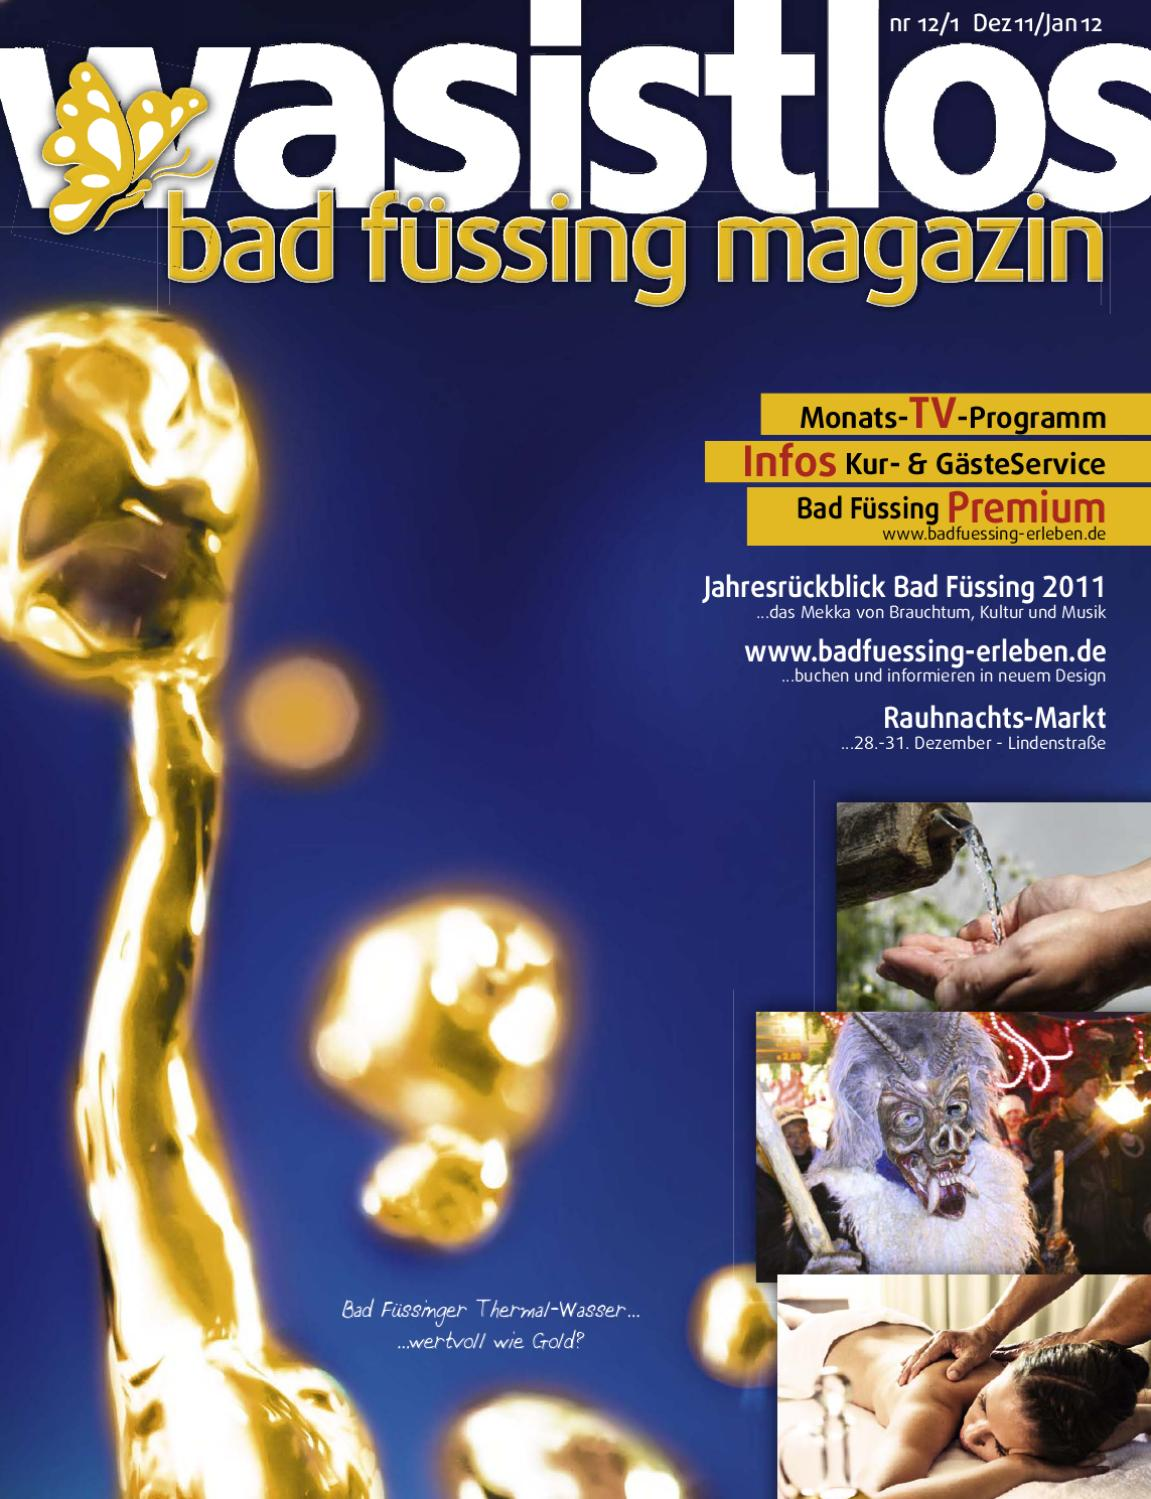 wasistlos bad füssing magazin 12/11-01/12 by REMARK - marketing ...